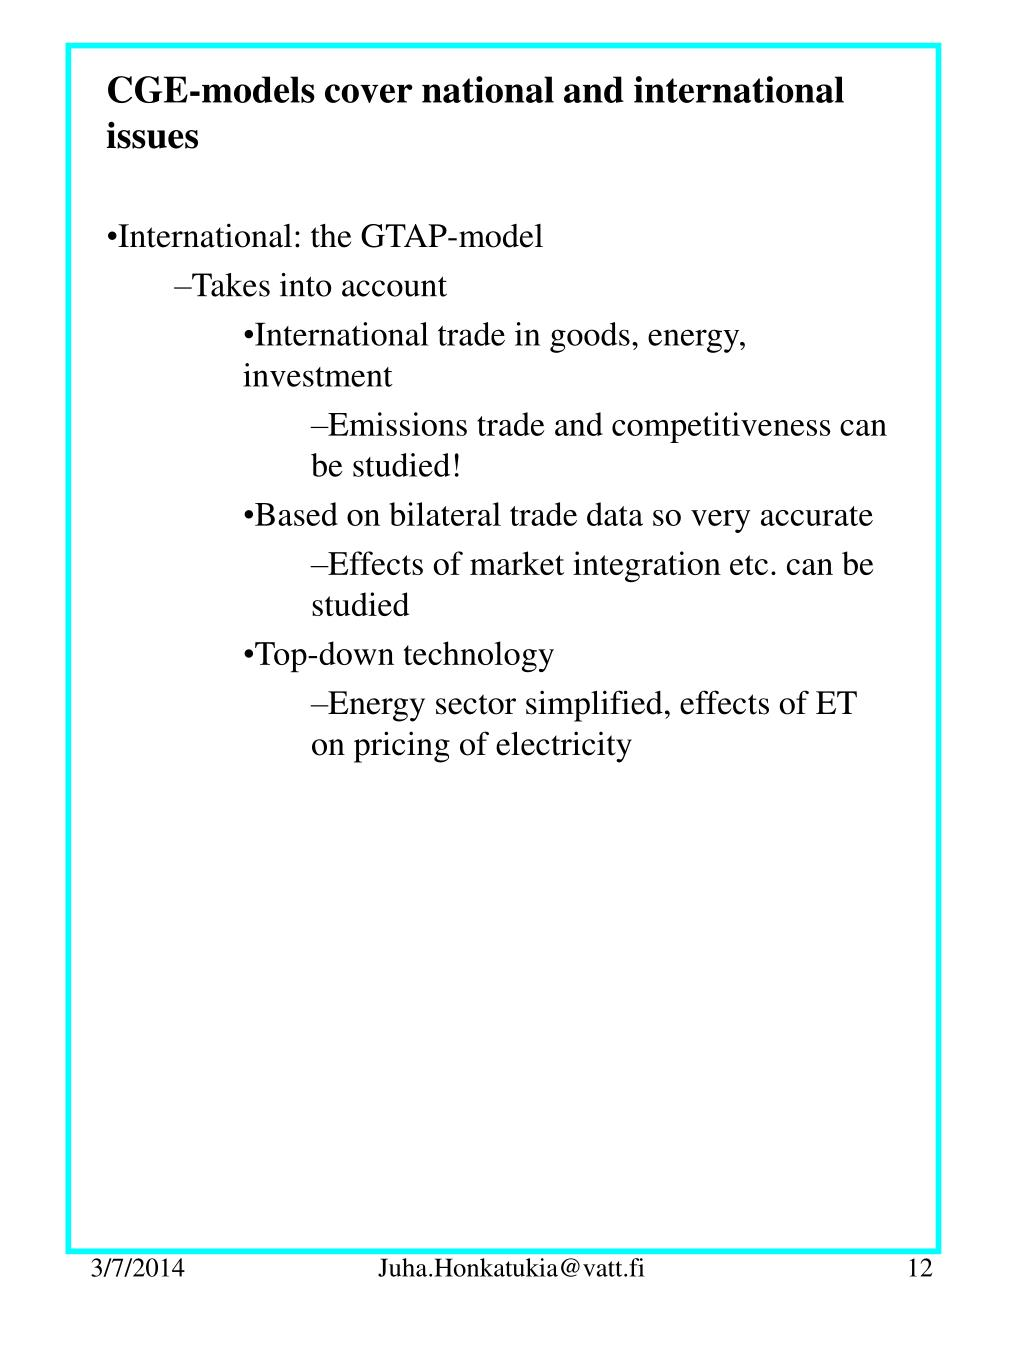 CGE-models cover national and international issues